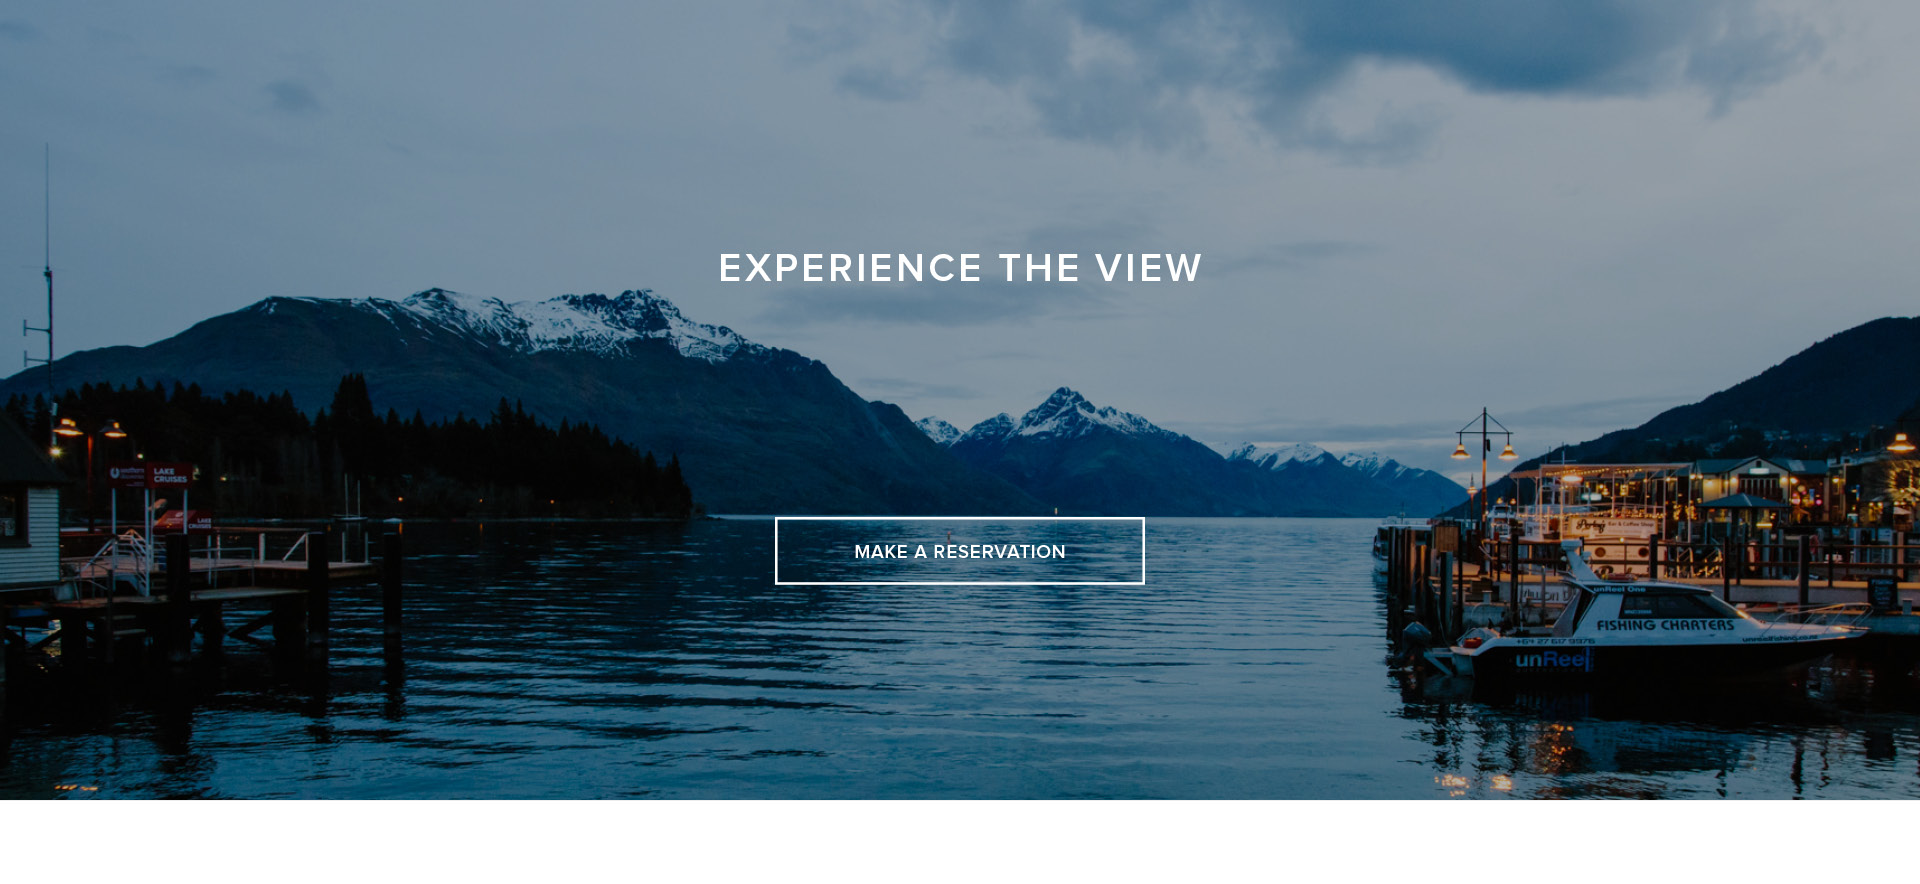 Experience The View - Make A Reservation